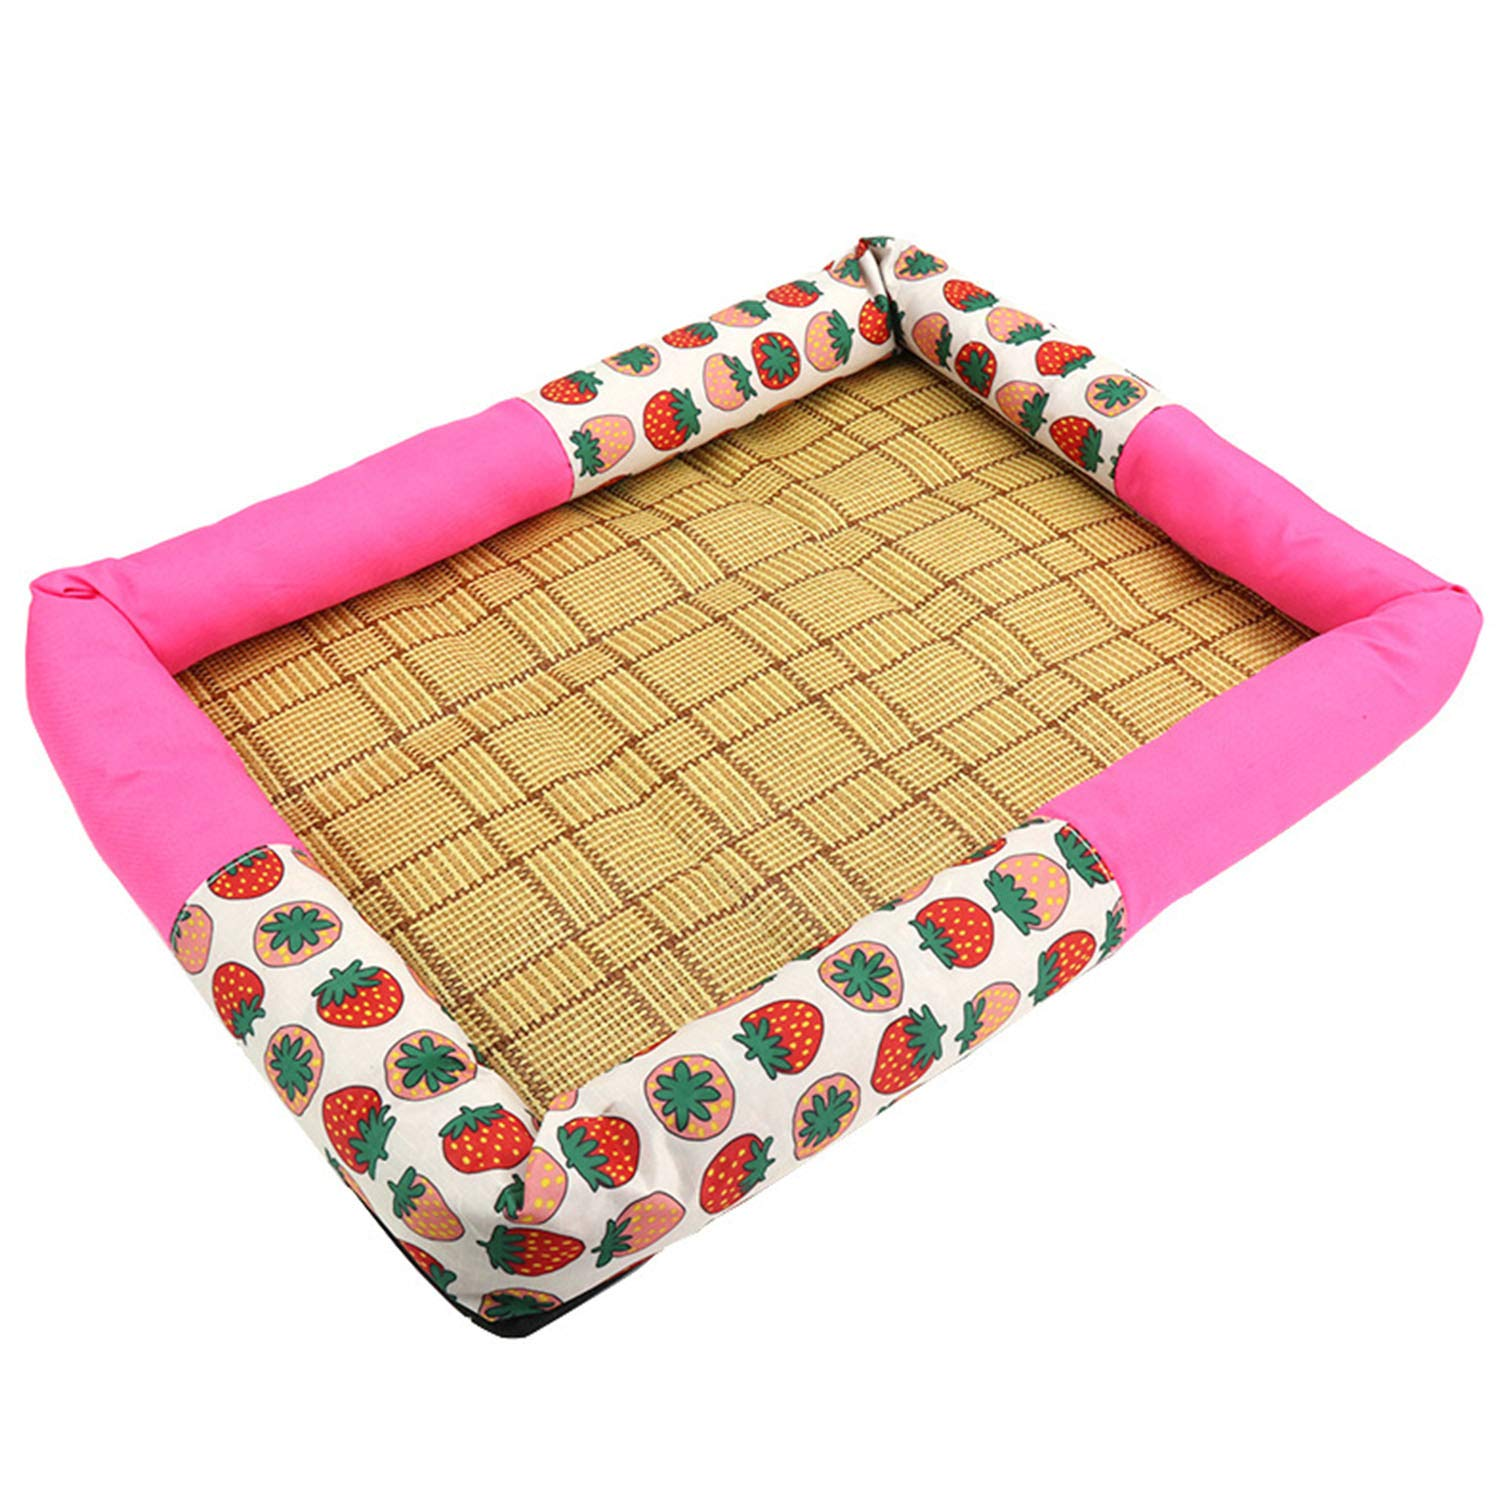 pink-red XL 6070cm (within 20kg) pink-red XL 6070cm (within 20kg) Summer Pet Nest, Pet Cool Pad, Suitable for Cats and Dogs, Waterproof, Non-Slip, Eco-Friendly Materials, Dogs Can Sleep and Play, Help Keep Your Pets Cooler Avoid Overheating, Ideal for F